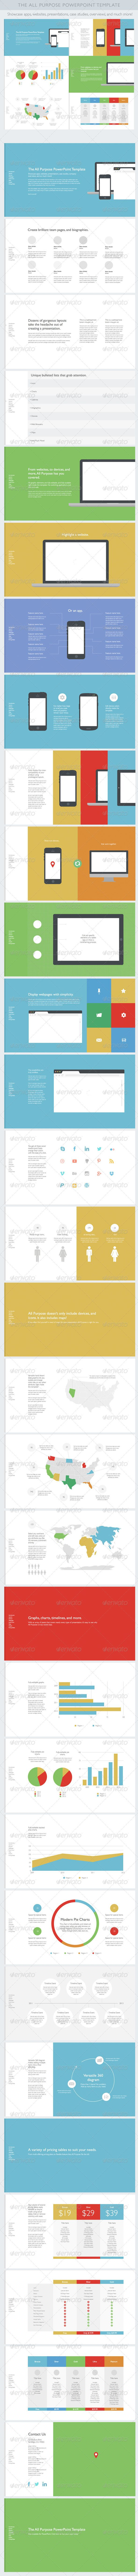 Flat All Purpose PowerPoint Template  #GraphicRiver         Showcase apps, websites, presentations, case studies, company overviews, and so much more!  All Purpose is the most versatile PowerPoint template on the market. Create app walkthroughs, case studies, company overviews, and so much more, all with stunning 1920×1080 clarity! Each and every page of All Purpose has been professionally concepted and designed, allowing you to easily and quickly create modern presentations that match your…